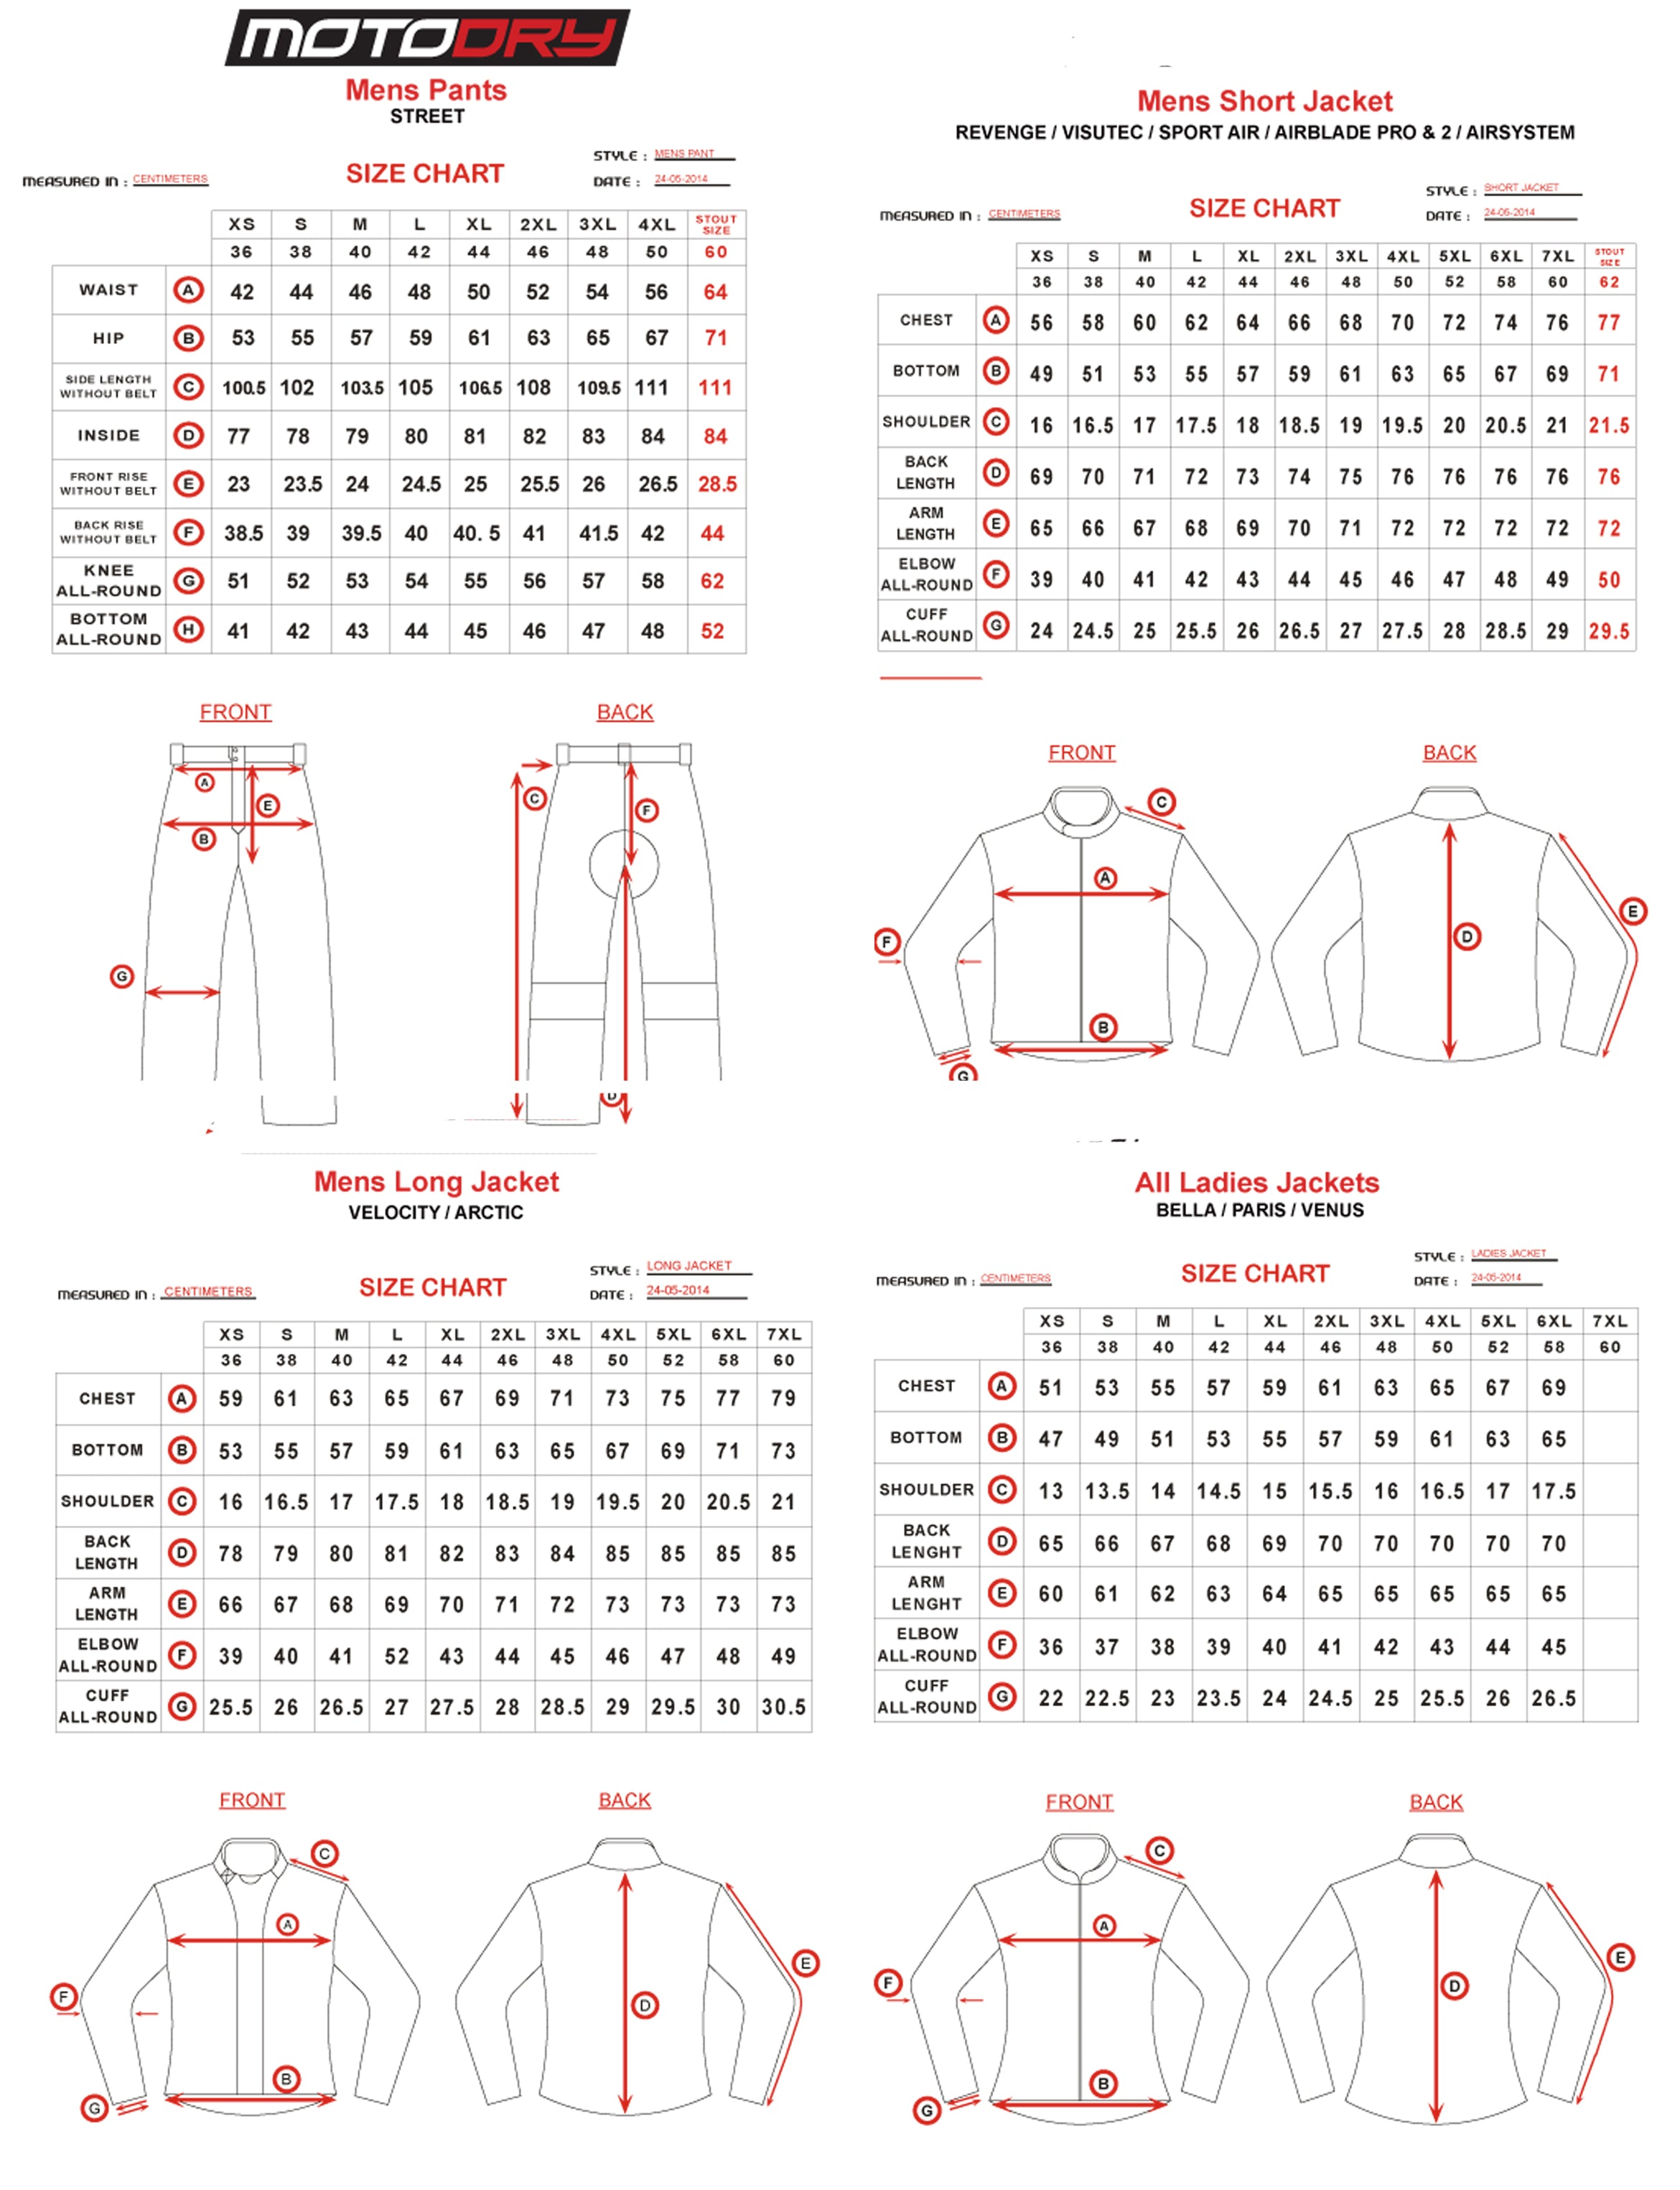 Moto Dry - Rapid Summer Jacket Size Guide